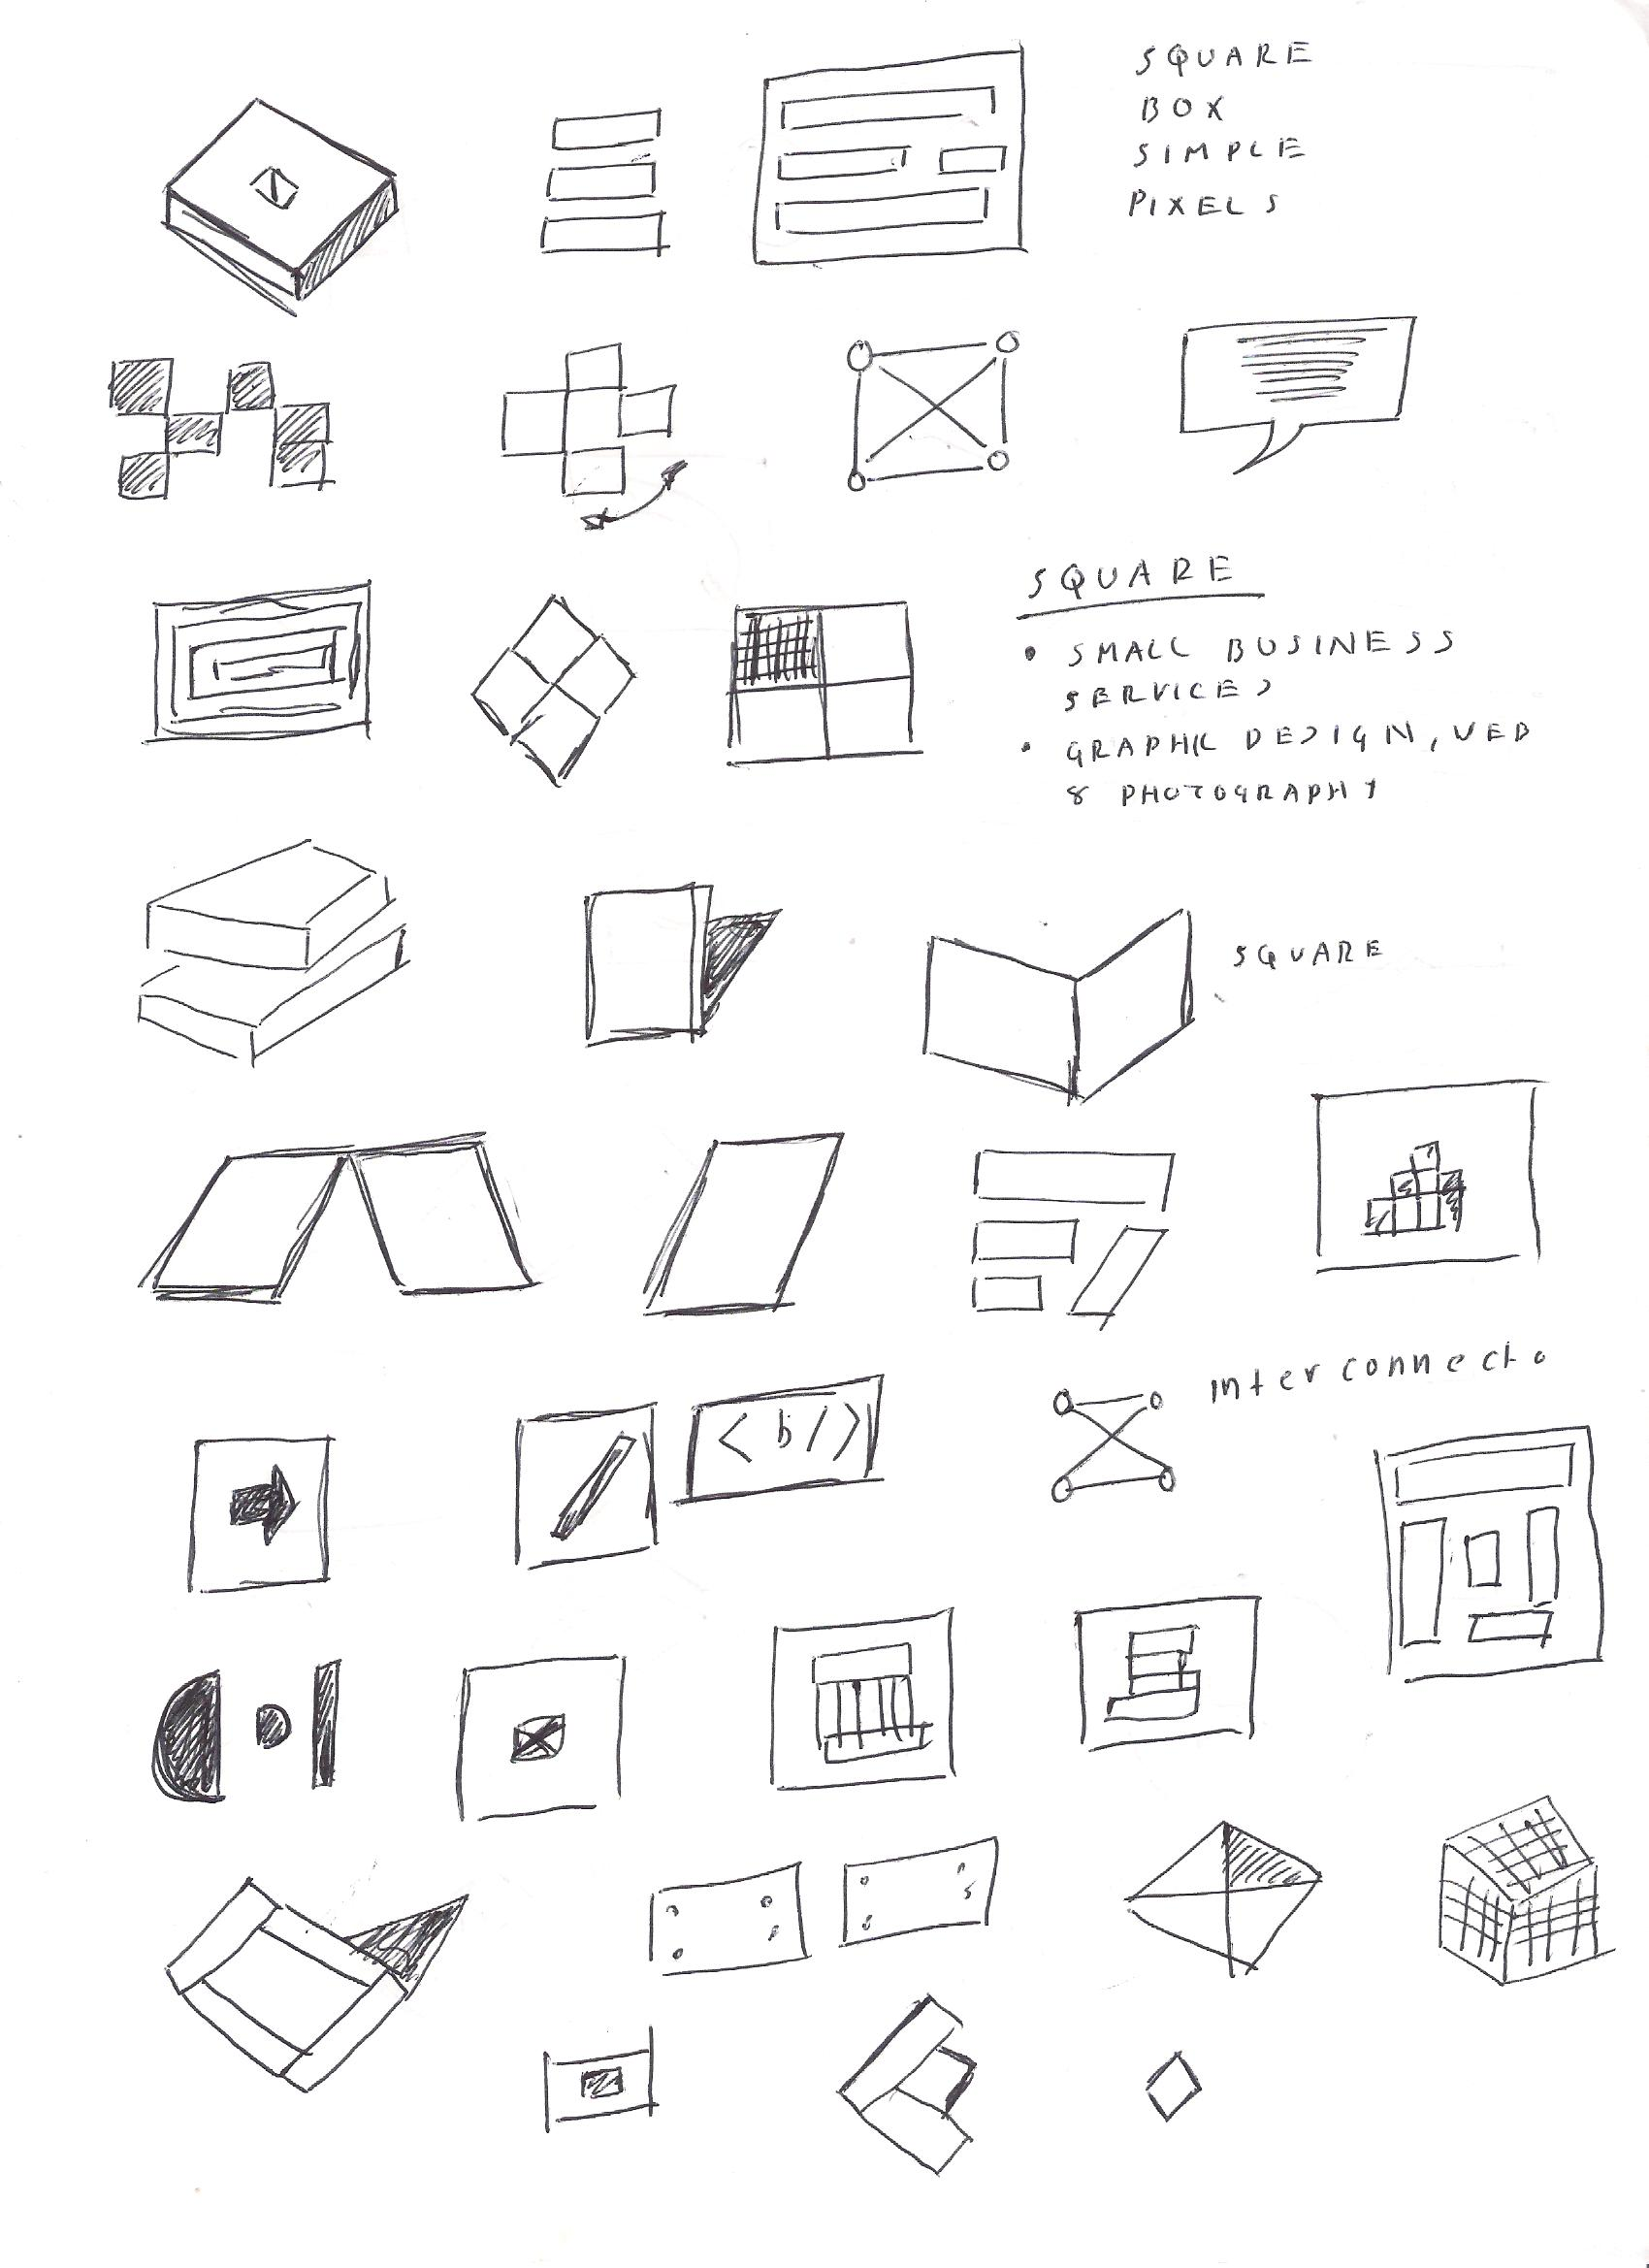 Square Design (Mood Boards)  - image 11 - student project